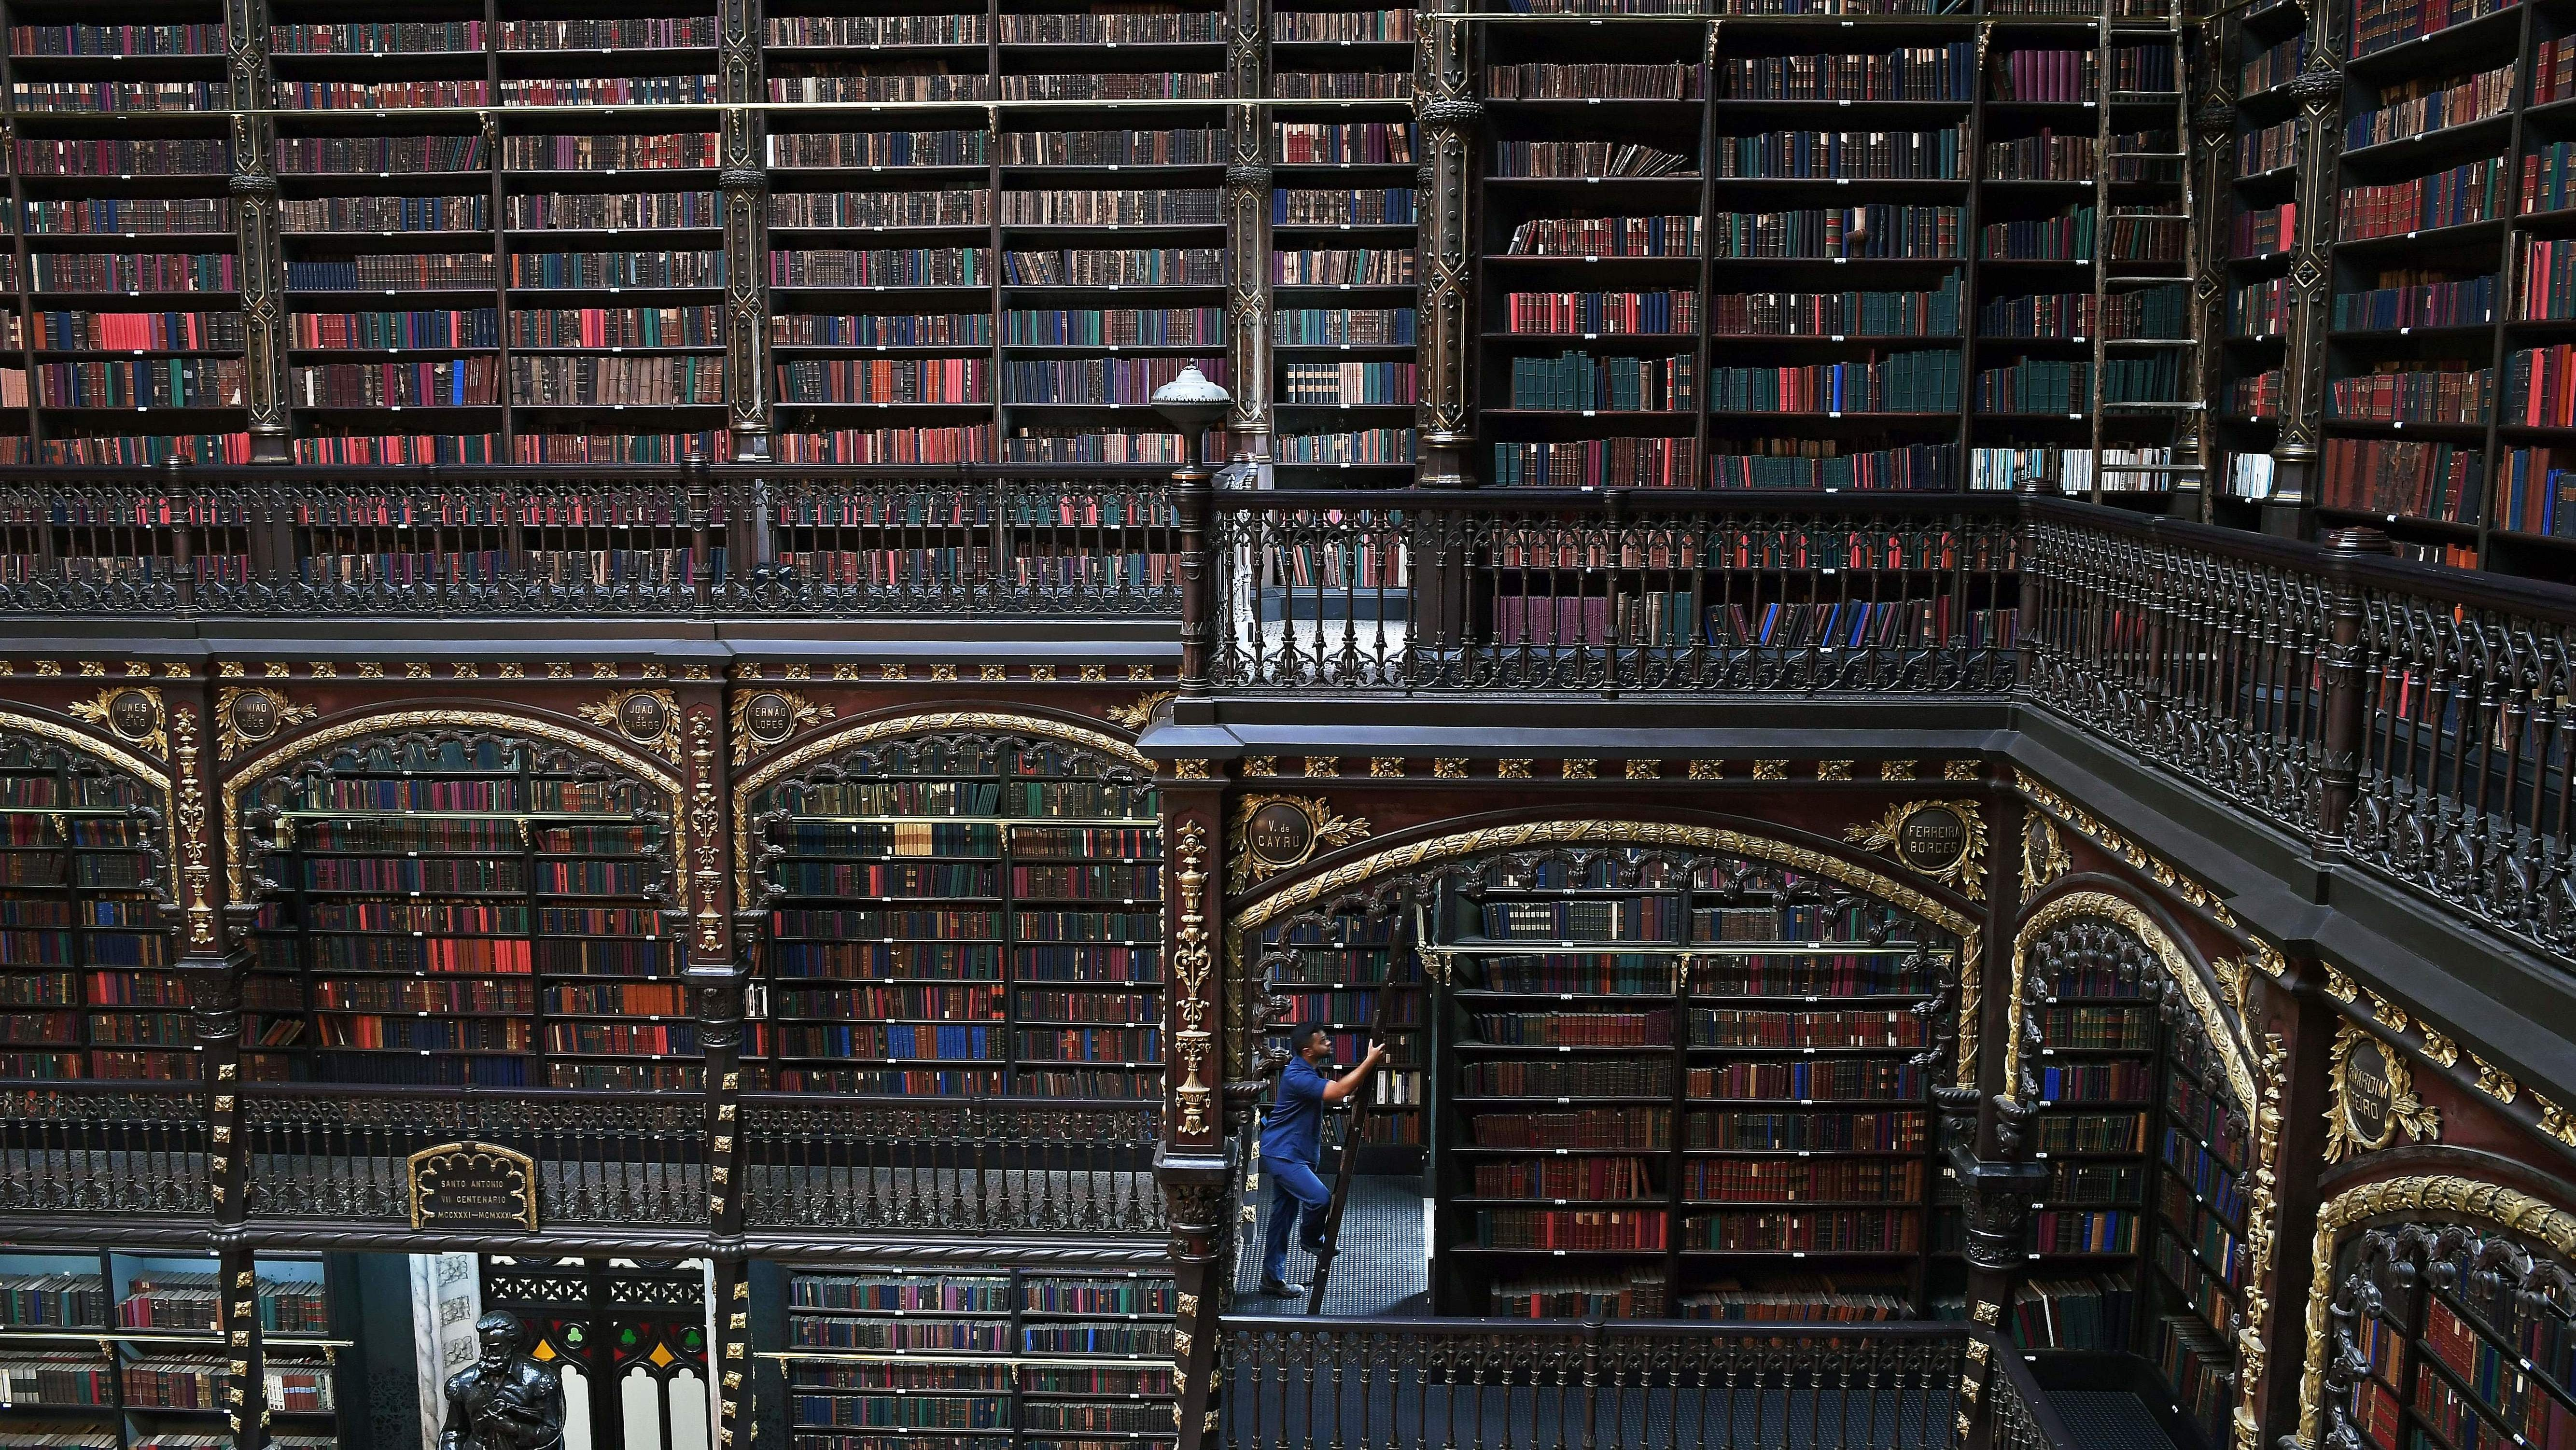 The Internet Archive Fights Wiki Citation Wars With Books